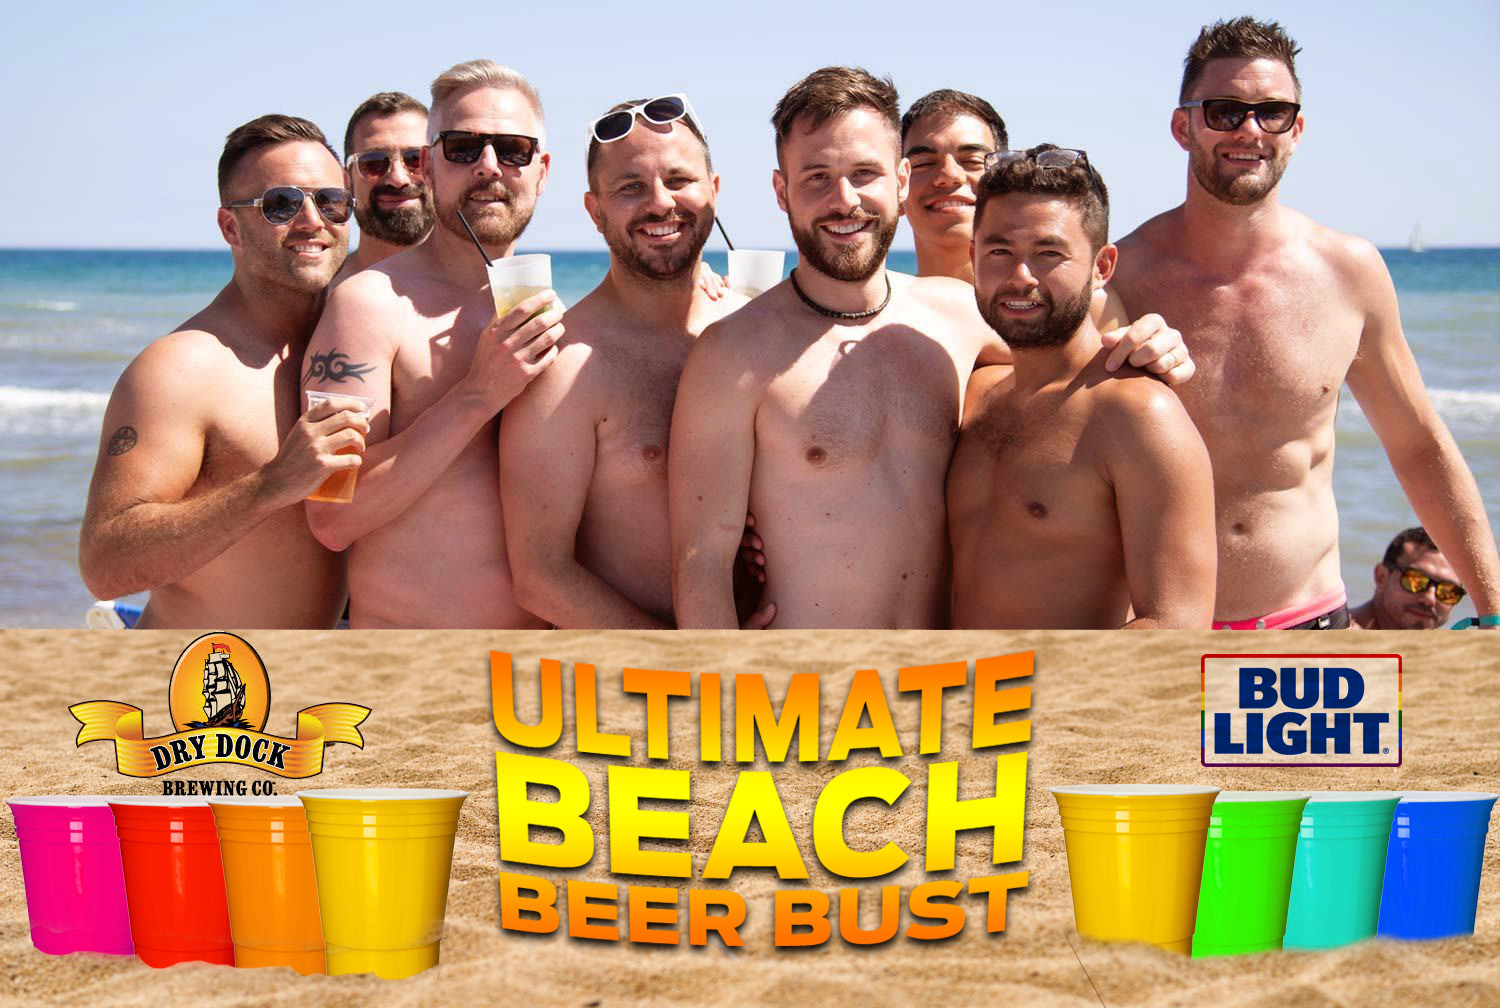 Ultimate Beach Beer Bust